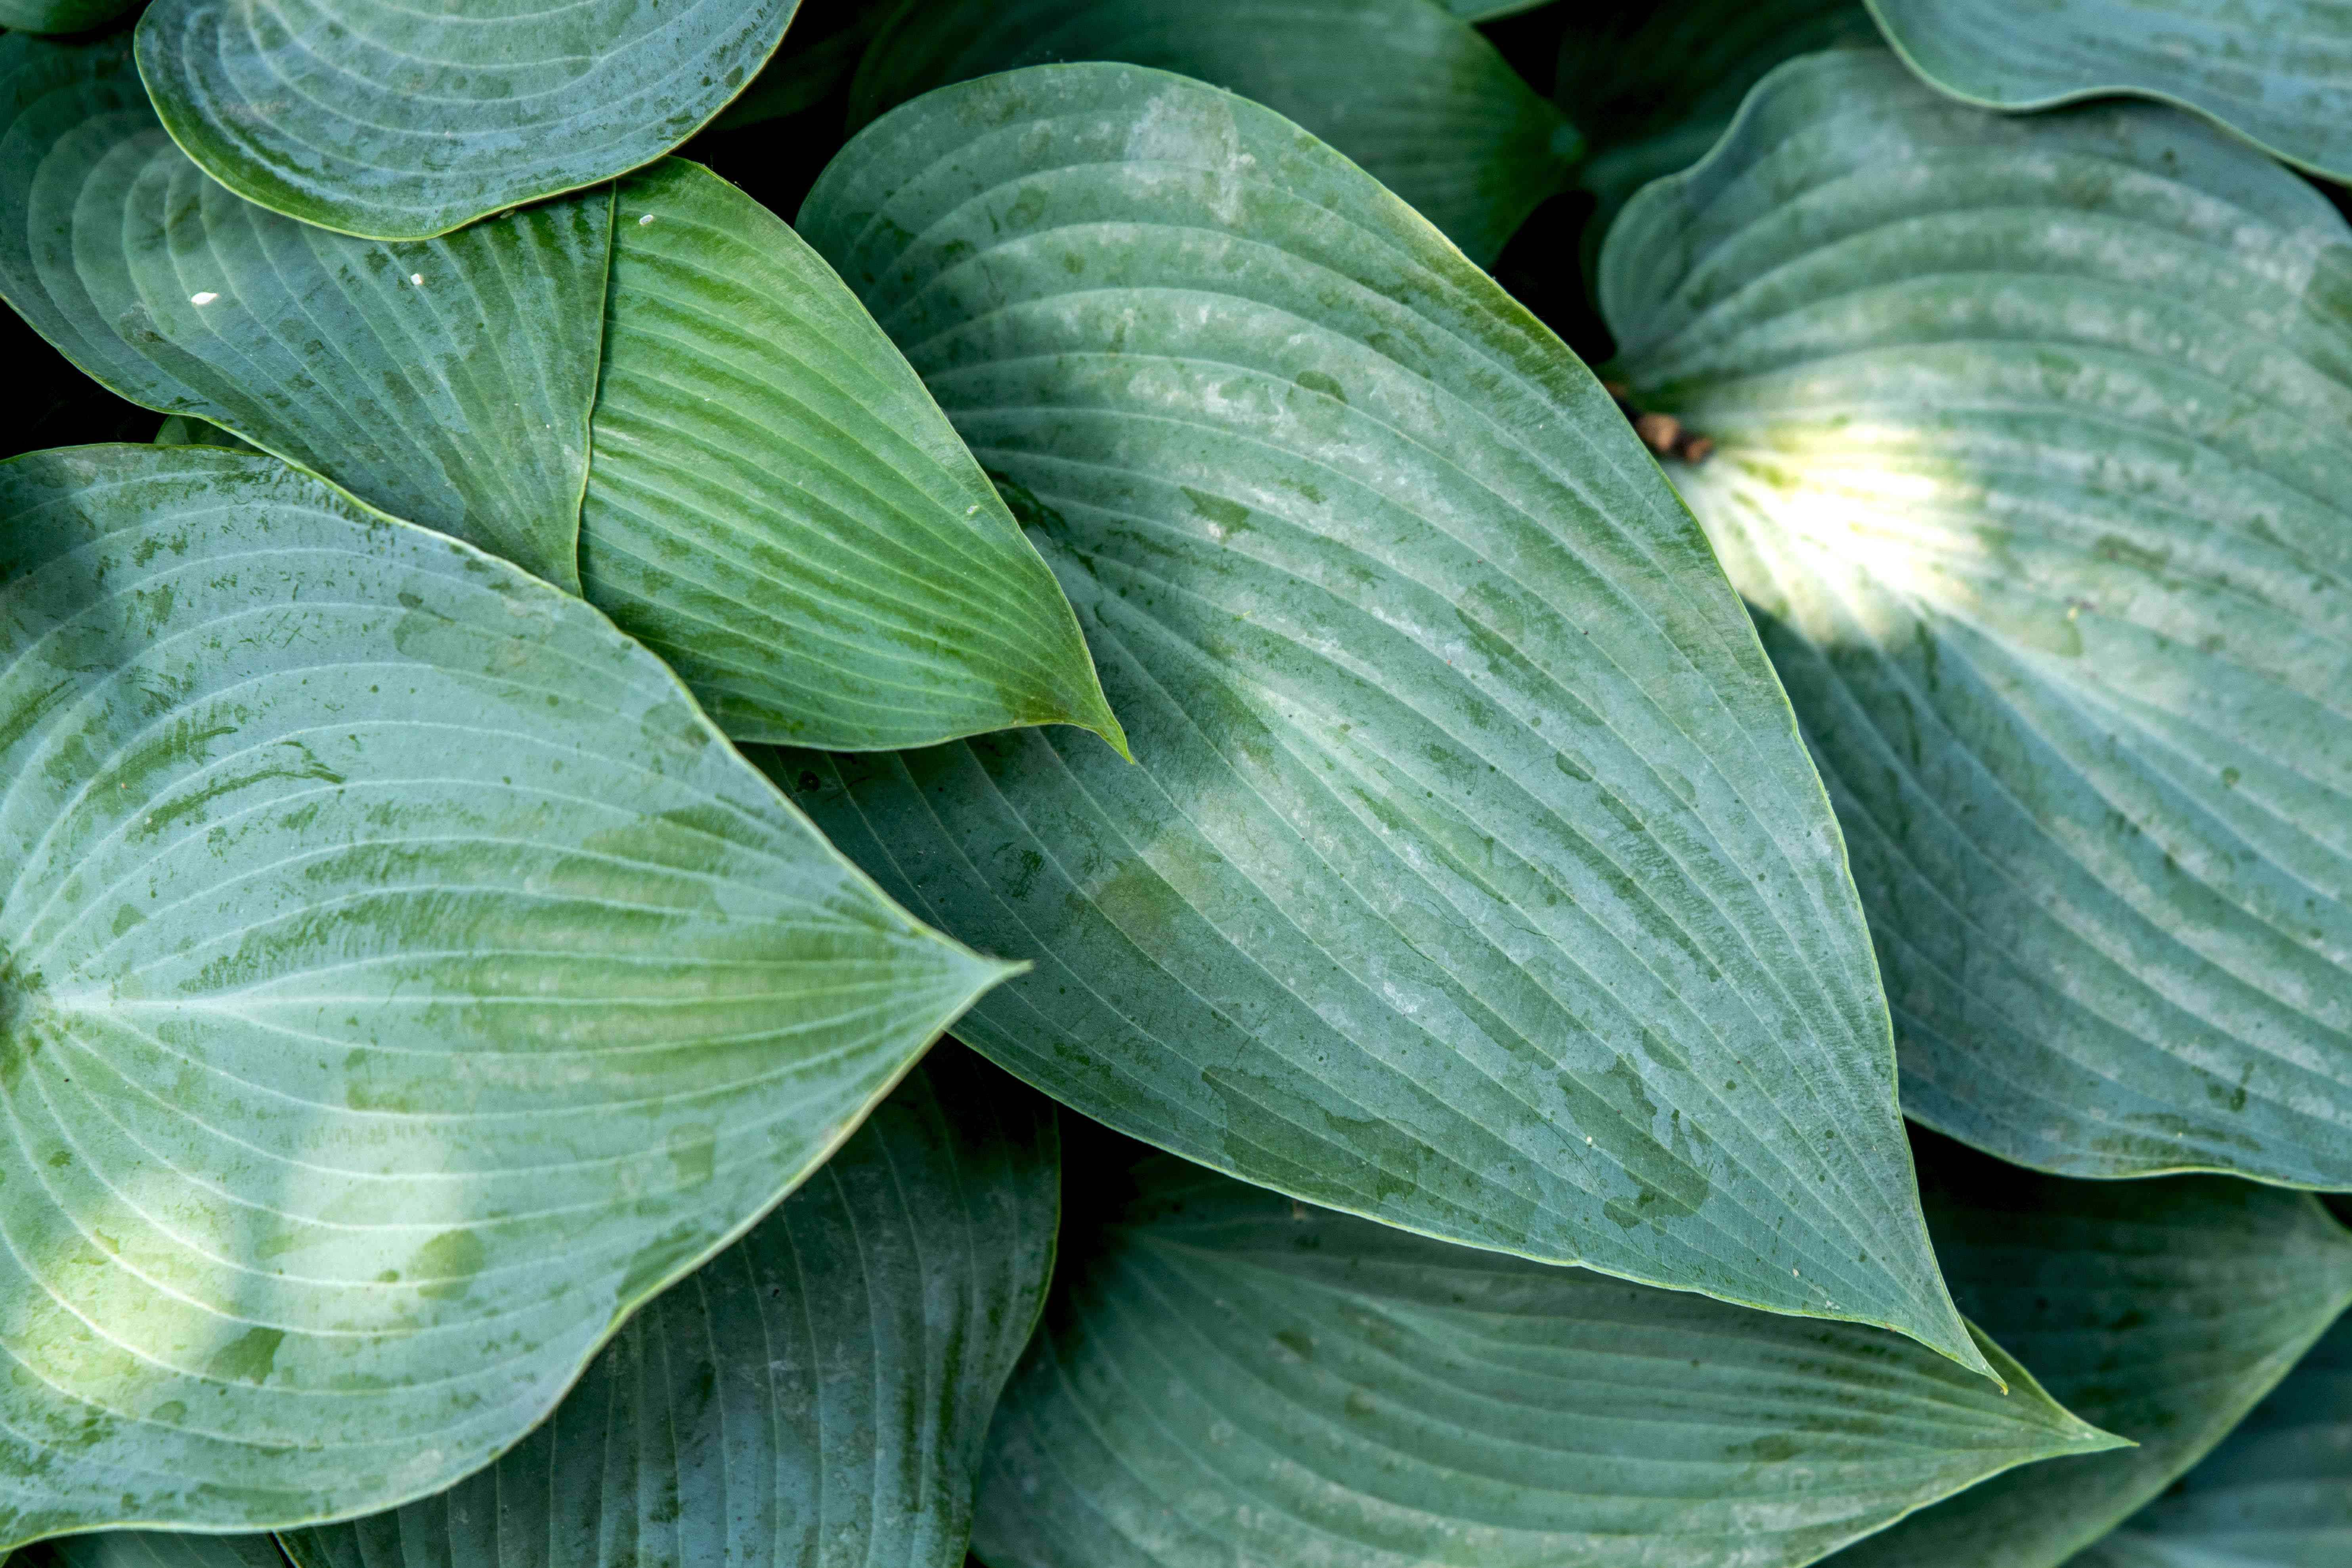 Hosta 'Halcyon' plant with blue-green textured leaves closeup